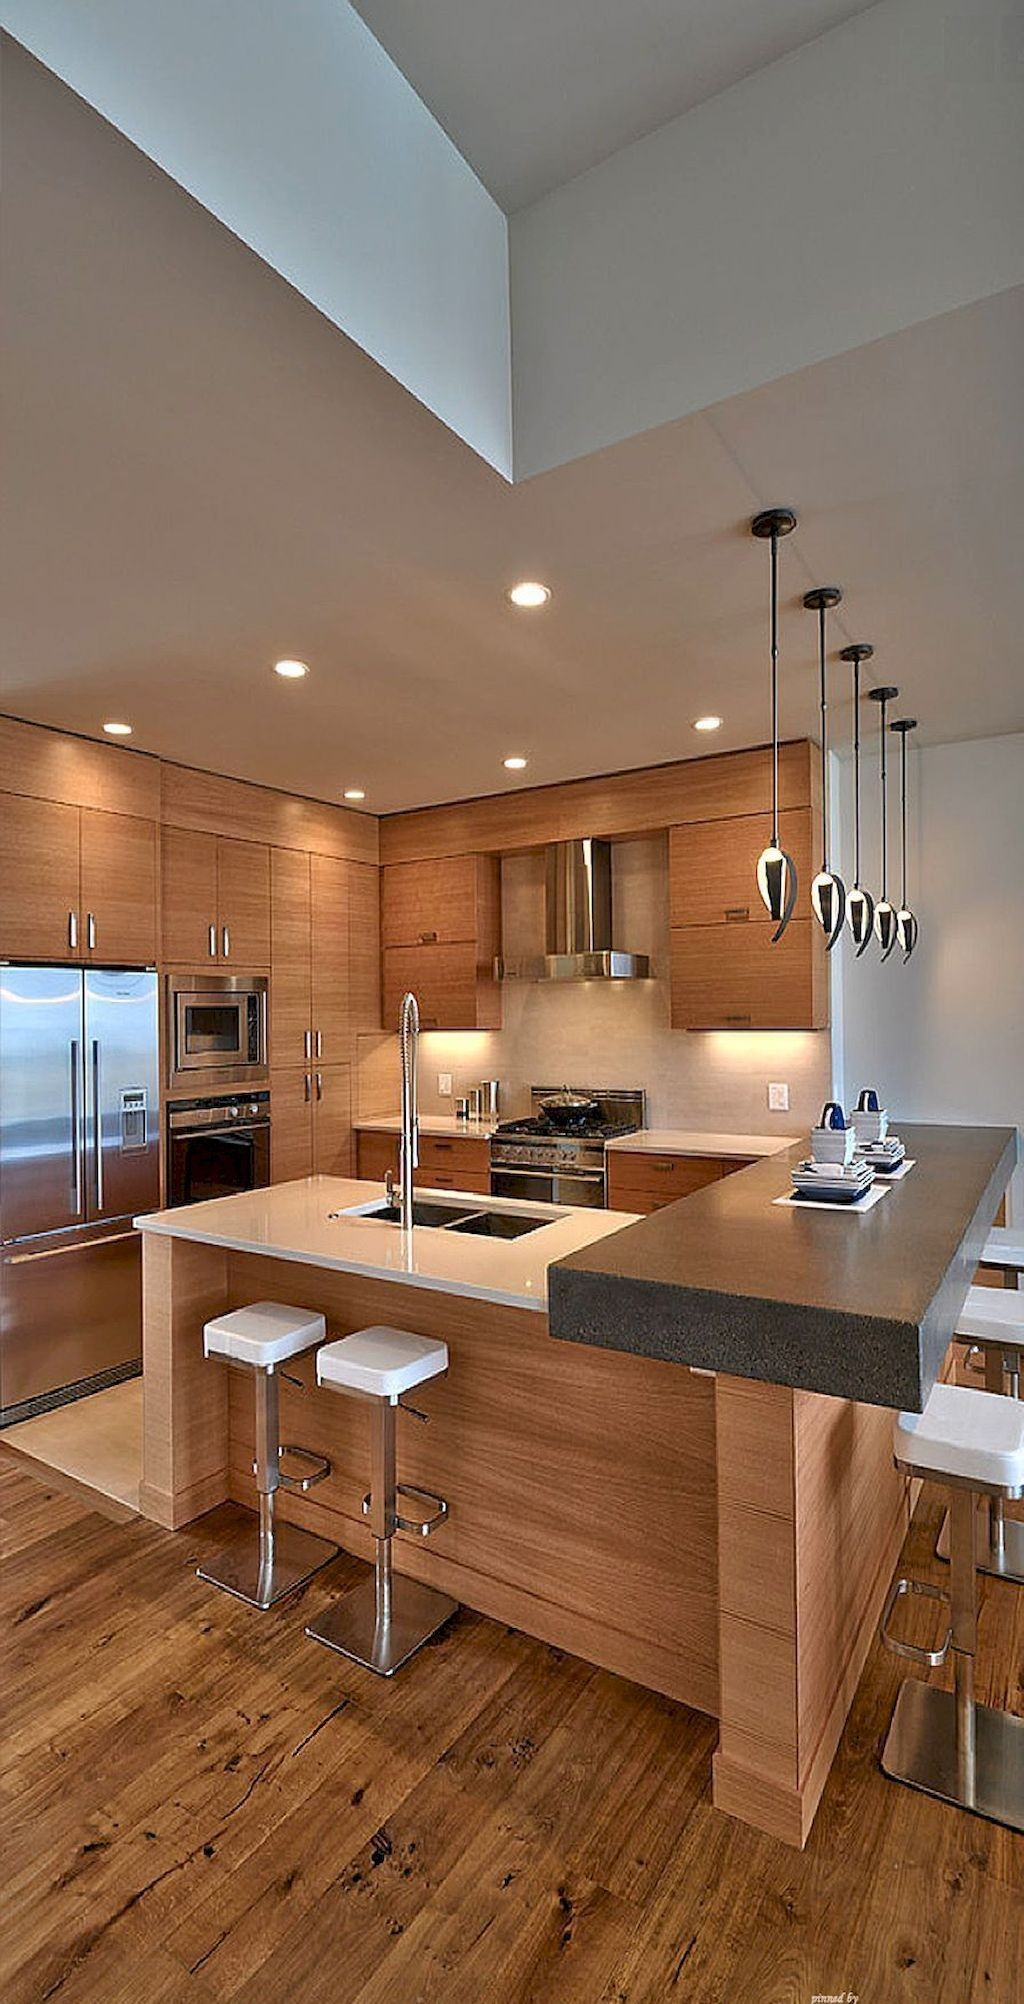 Modern kitchens use clever design and sleek styles to create an impressive space to cook eat and entertain 45 Most Popular Kitchen Design Ideas on 2018